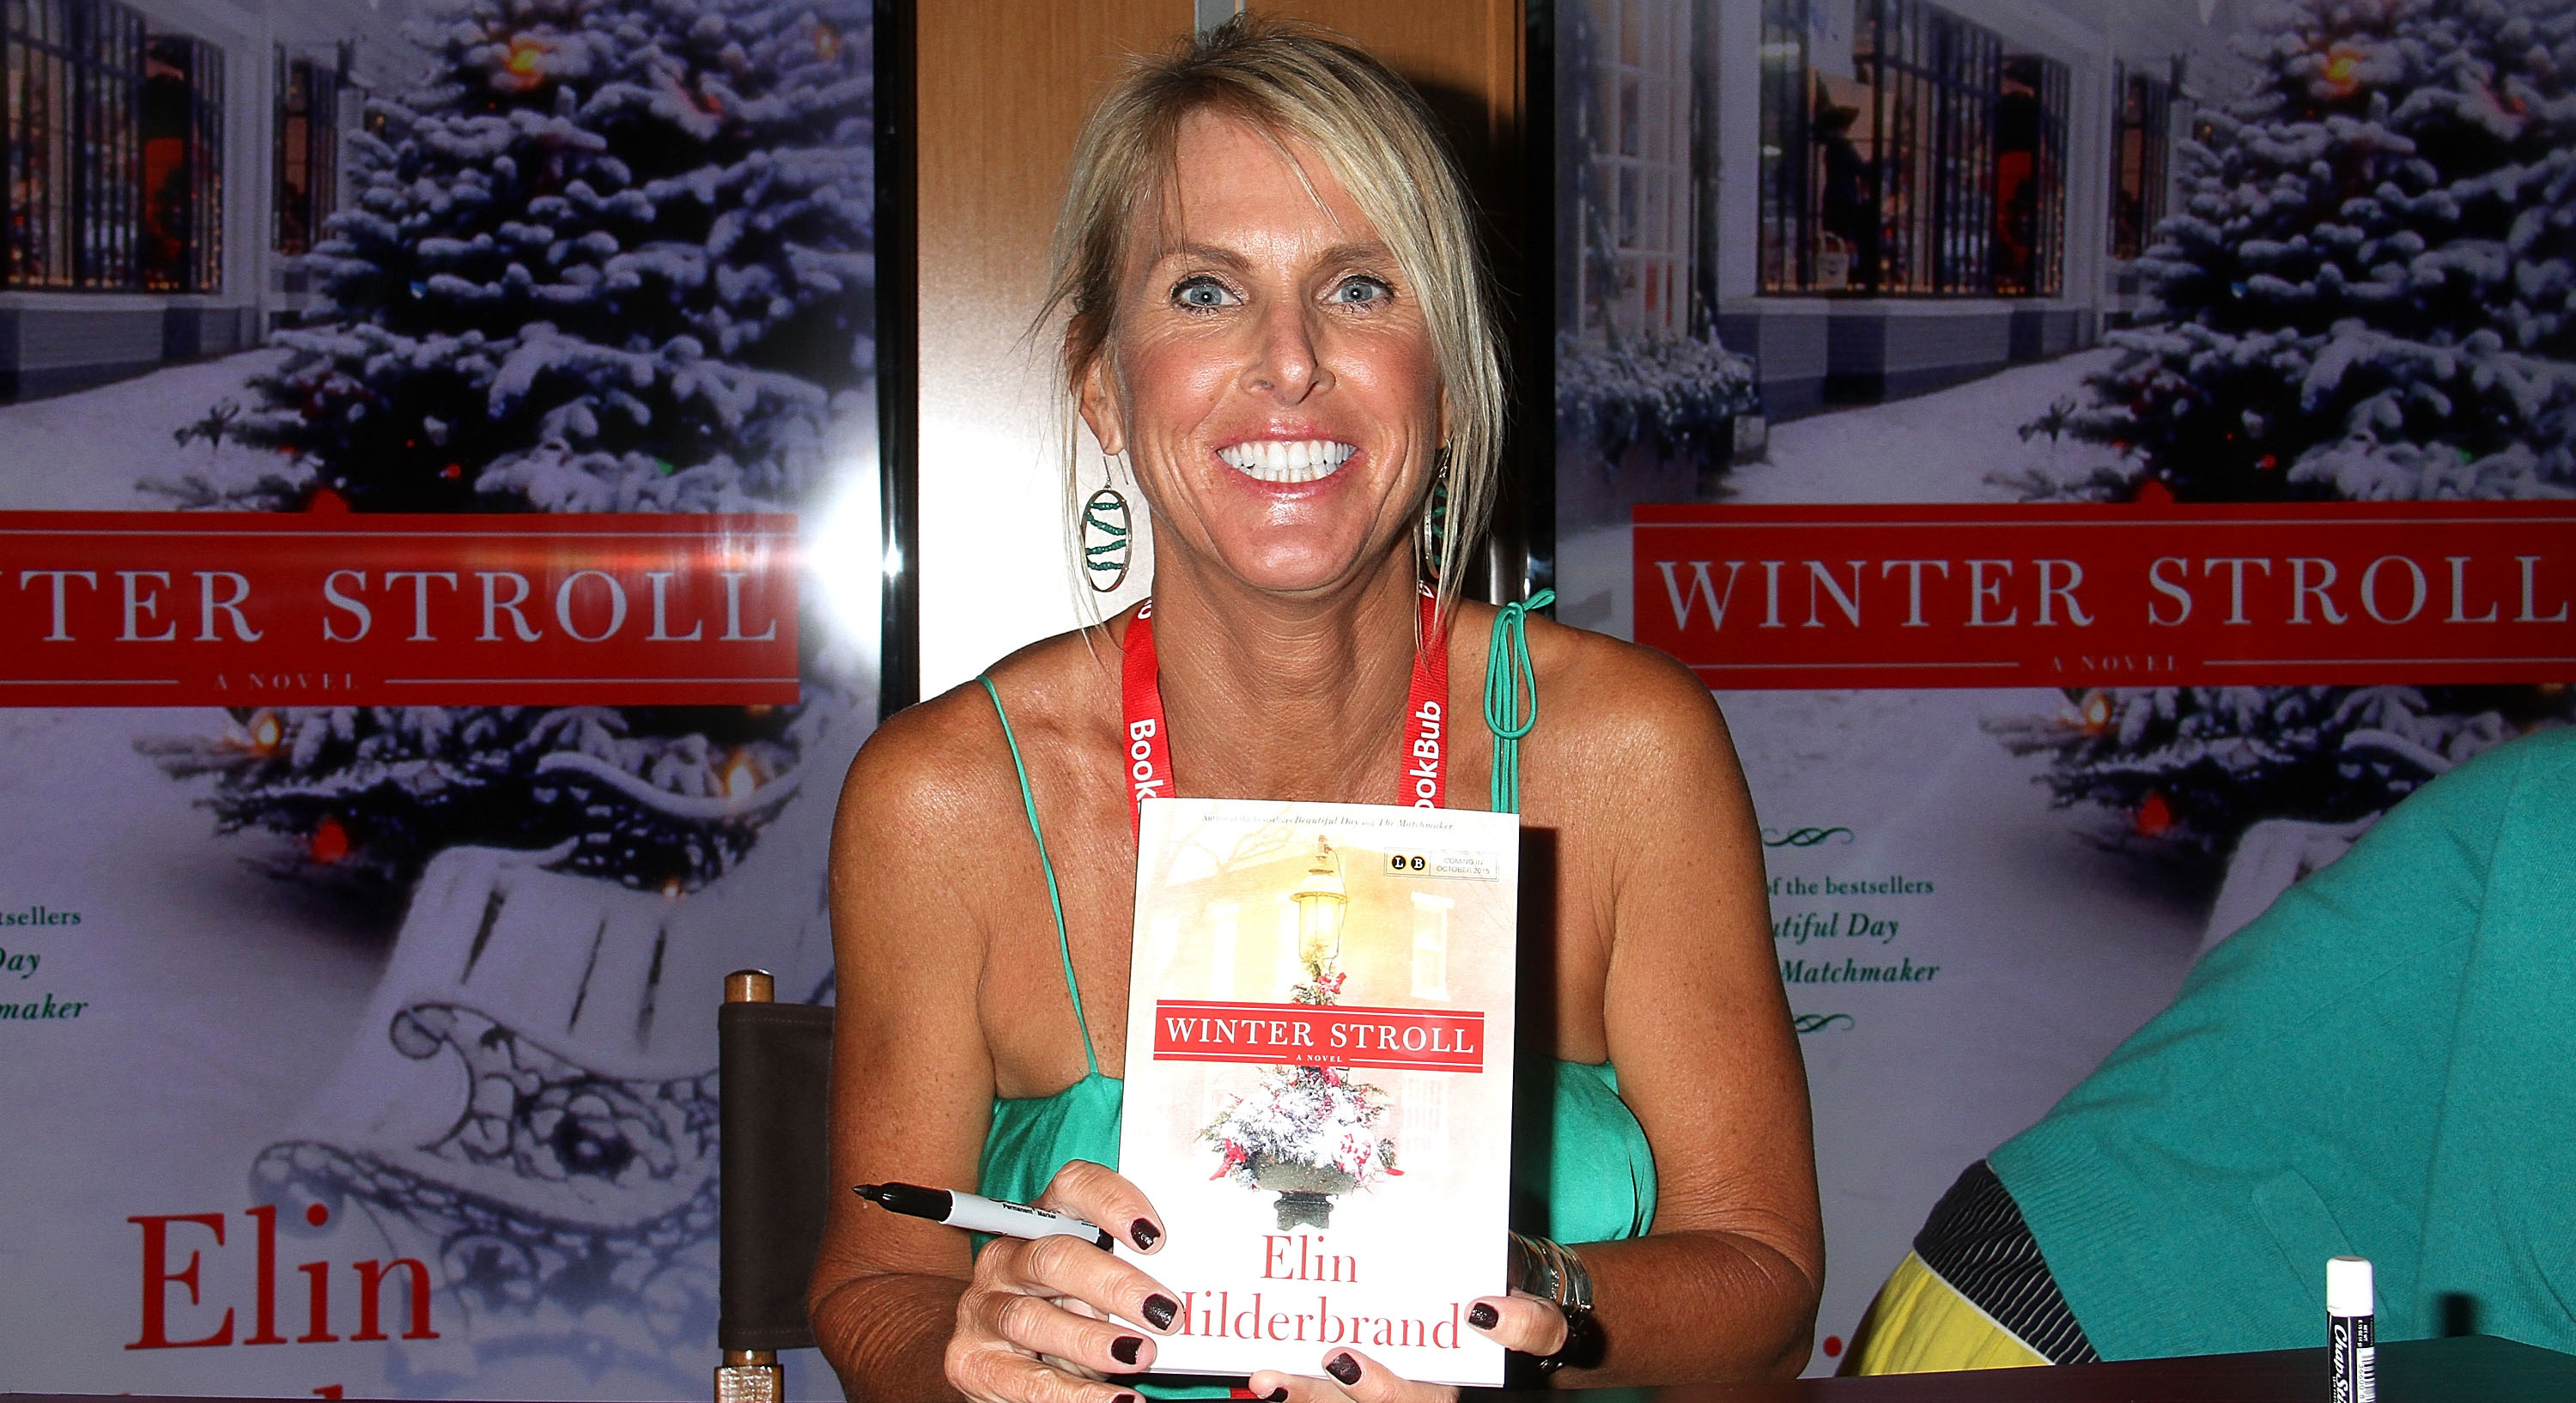 Elin Hilderbrand Holding In-Store Book Signings